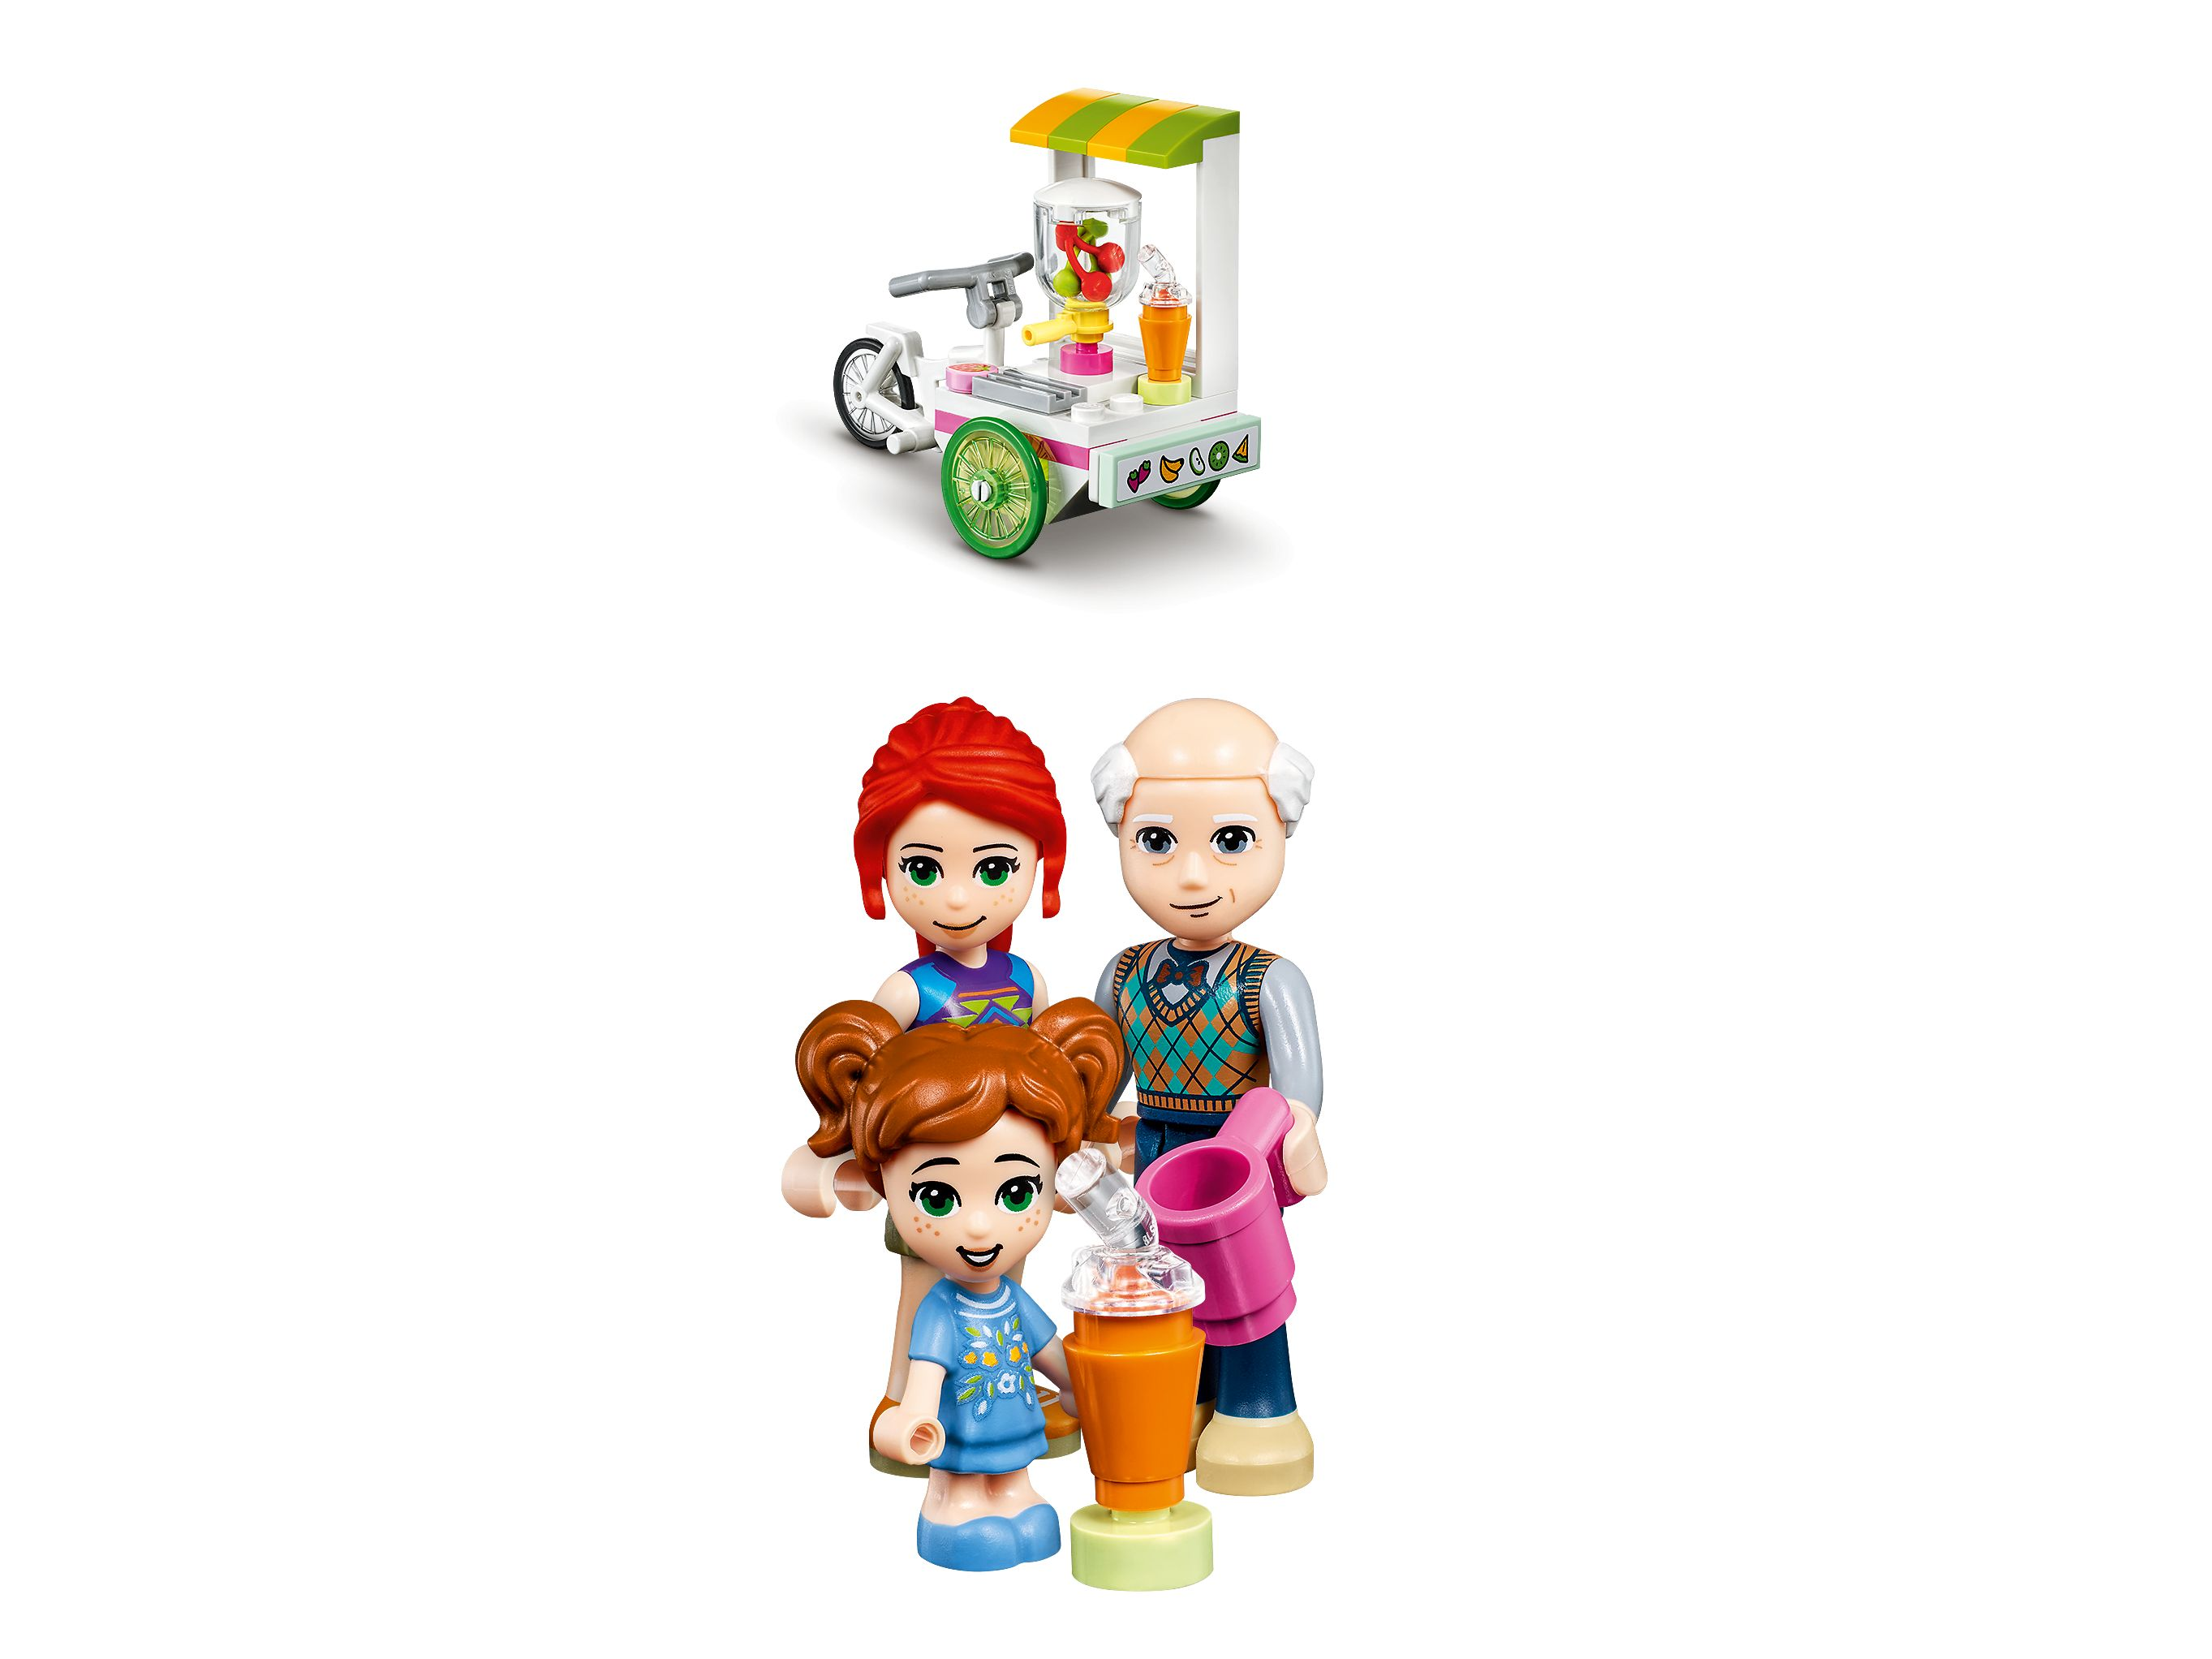 LEGO Friends 41444 Heartlake City Bio-Café LEGO_41444_alt3.jpg